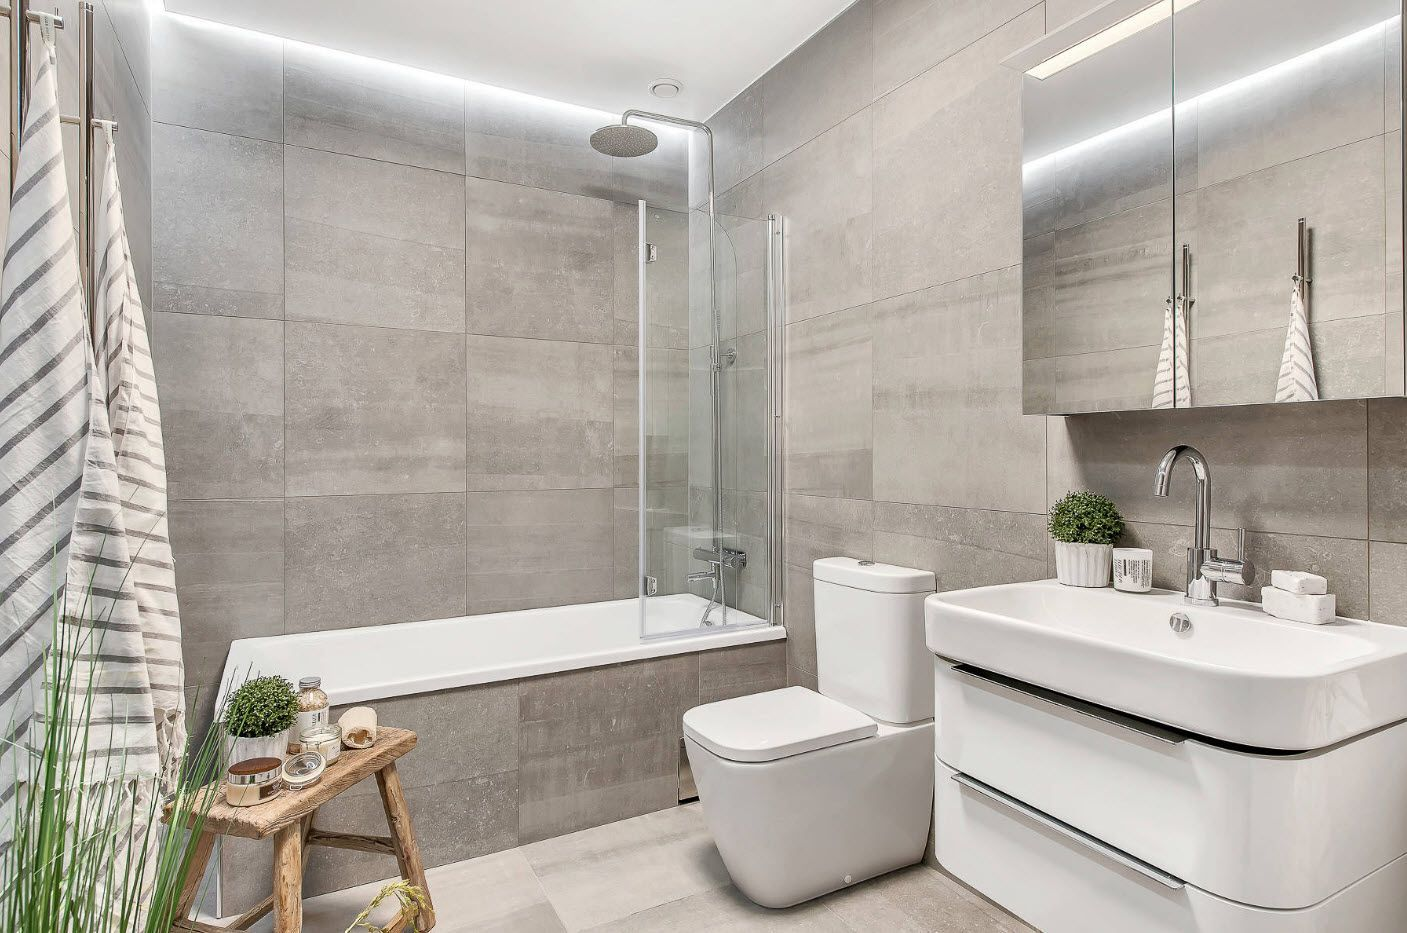 We've asked bathroom experts to reveal the top eight trends in bathroom  tiles, so you can create the space of your dreams.